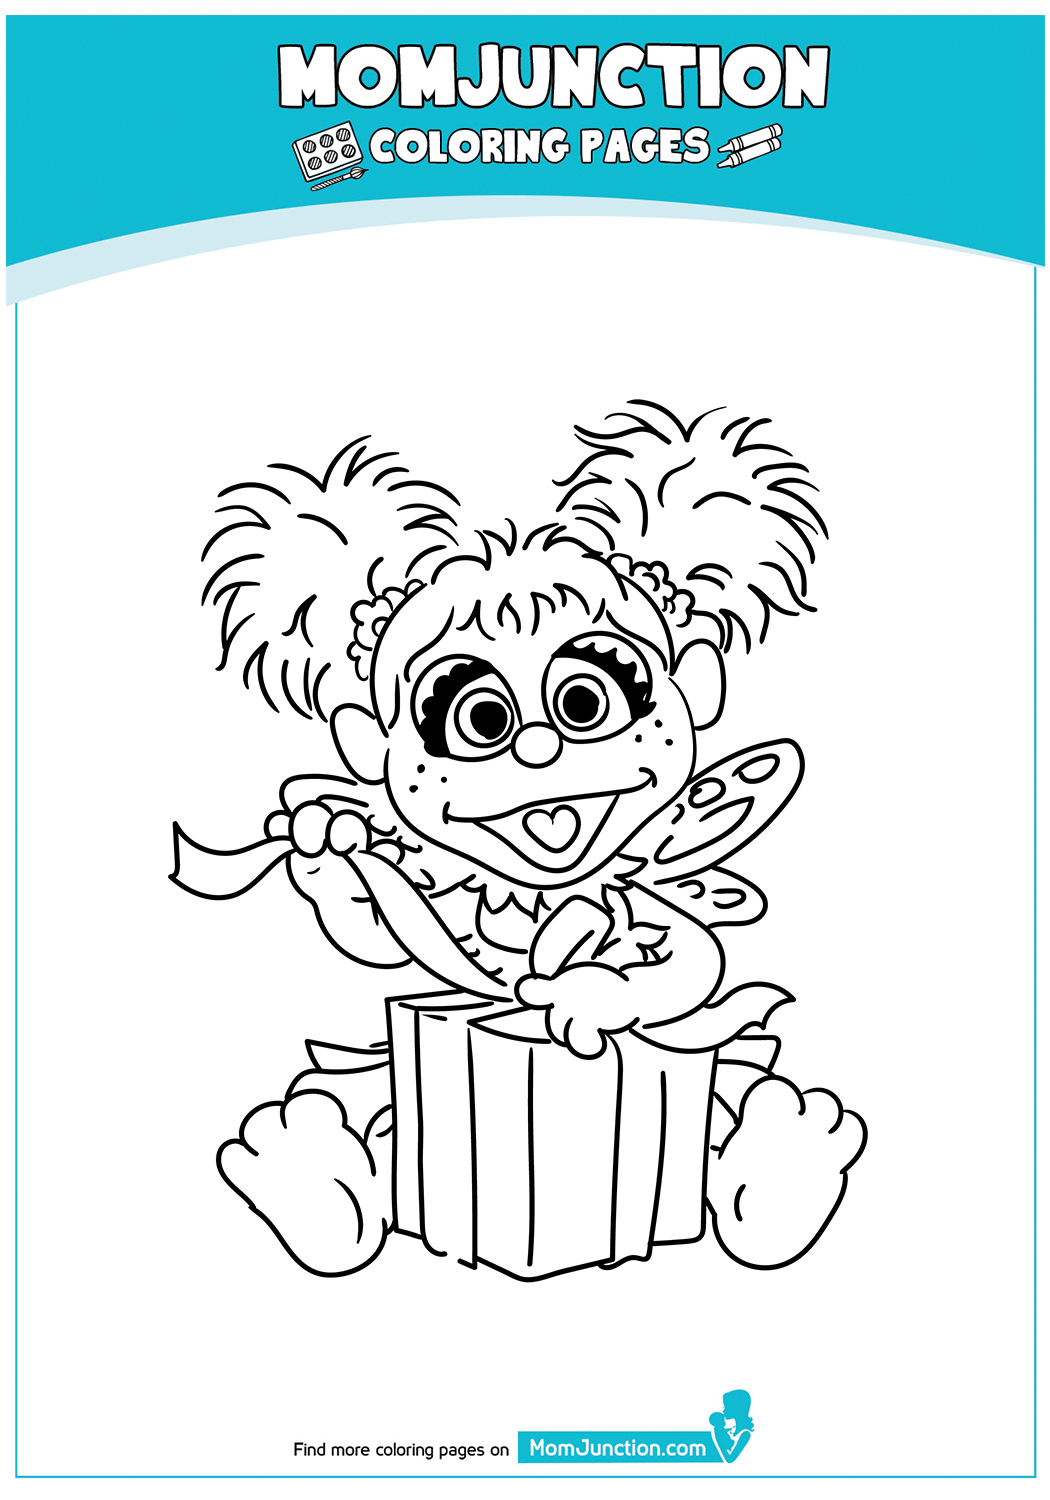 The-Top-10-Sesame-Street-Coloring-Pages-5-17